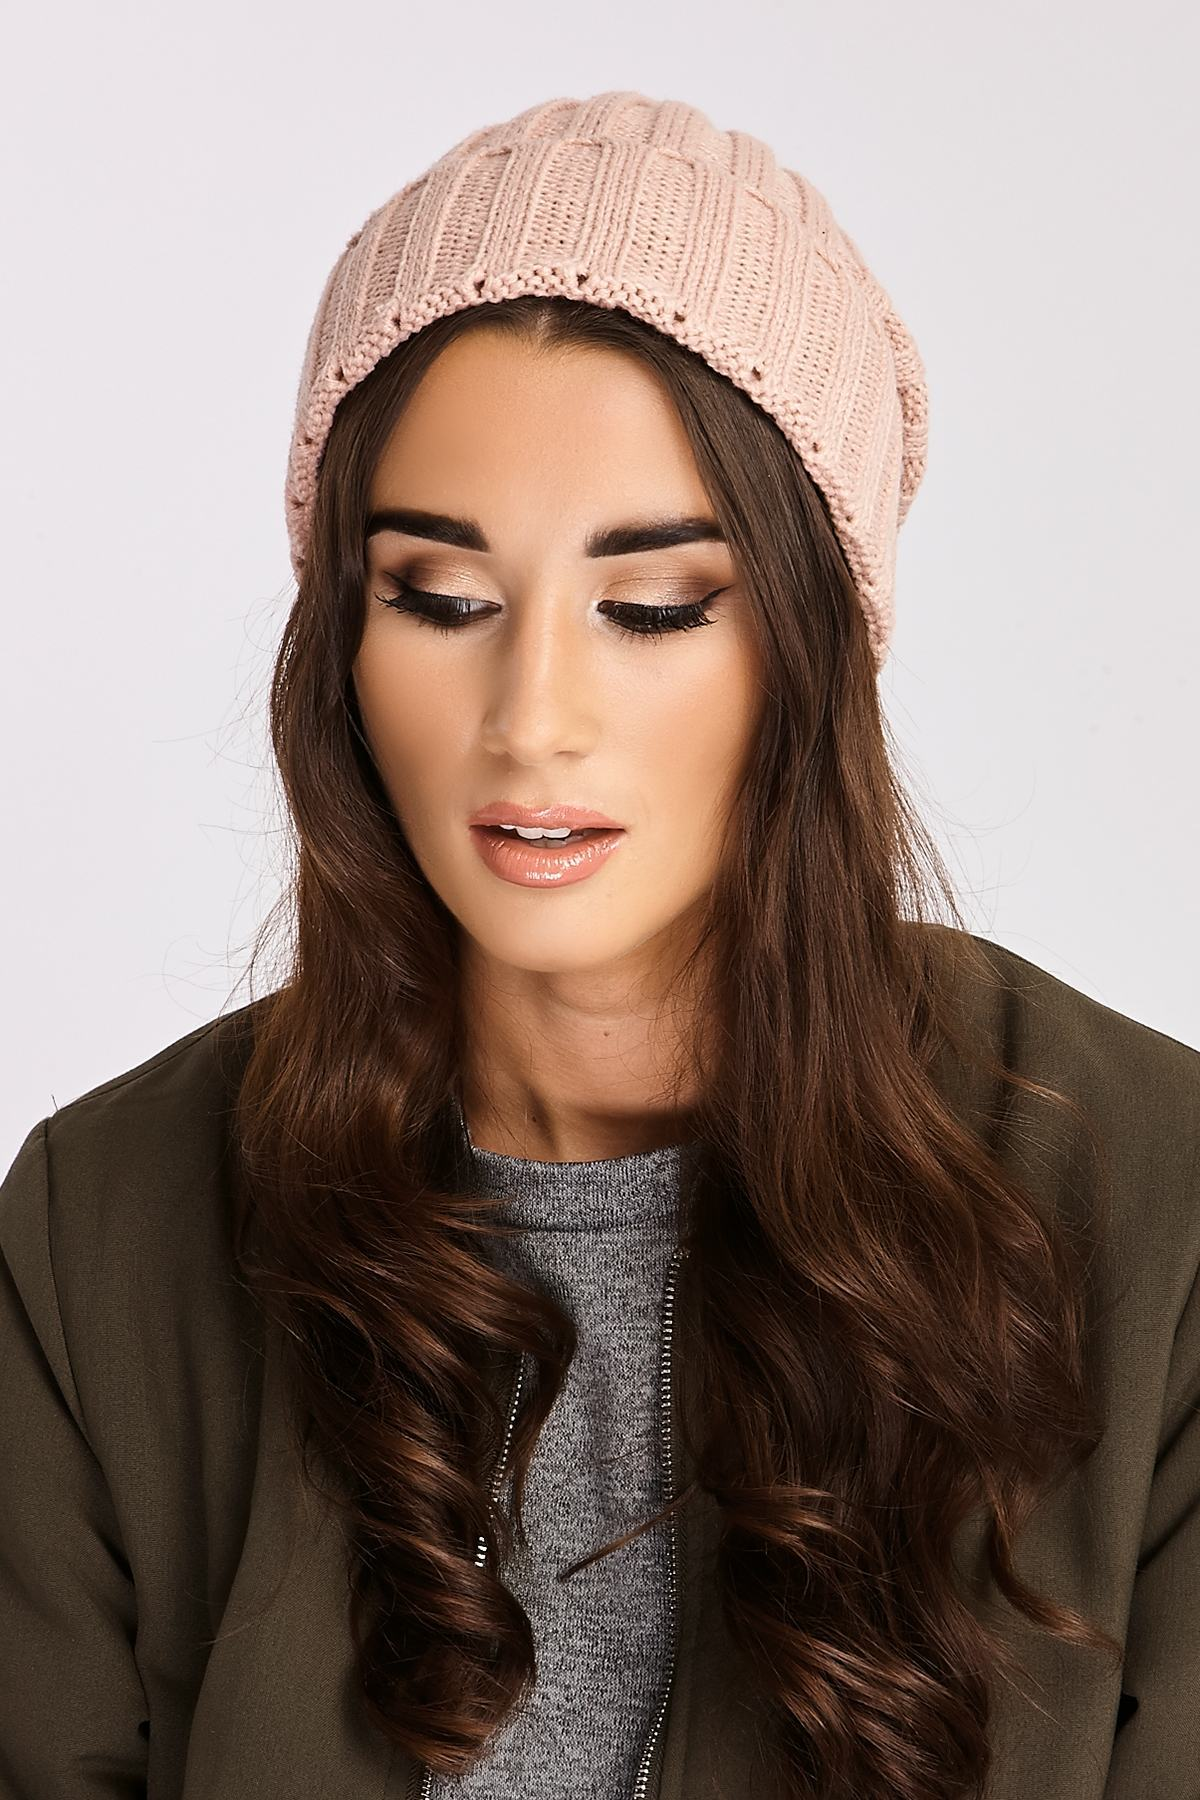 Rose Hats  Marah Rose Pink Knitted Beanie Hat